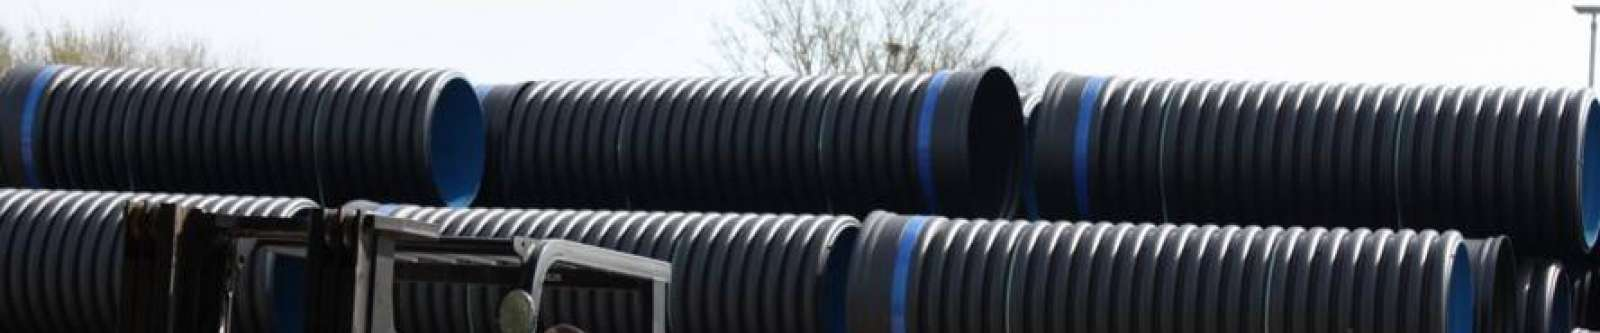 Ridgidrain Pipe System - surface water drainage